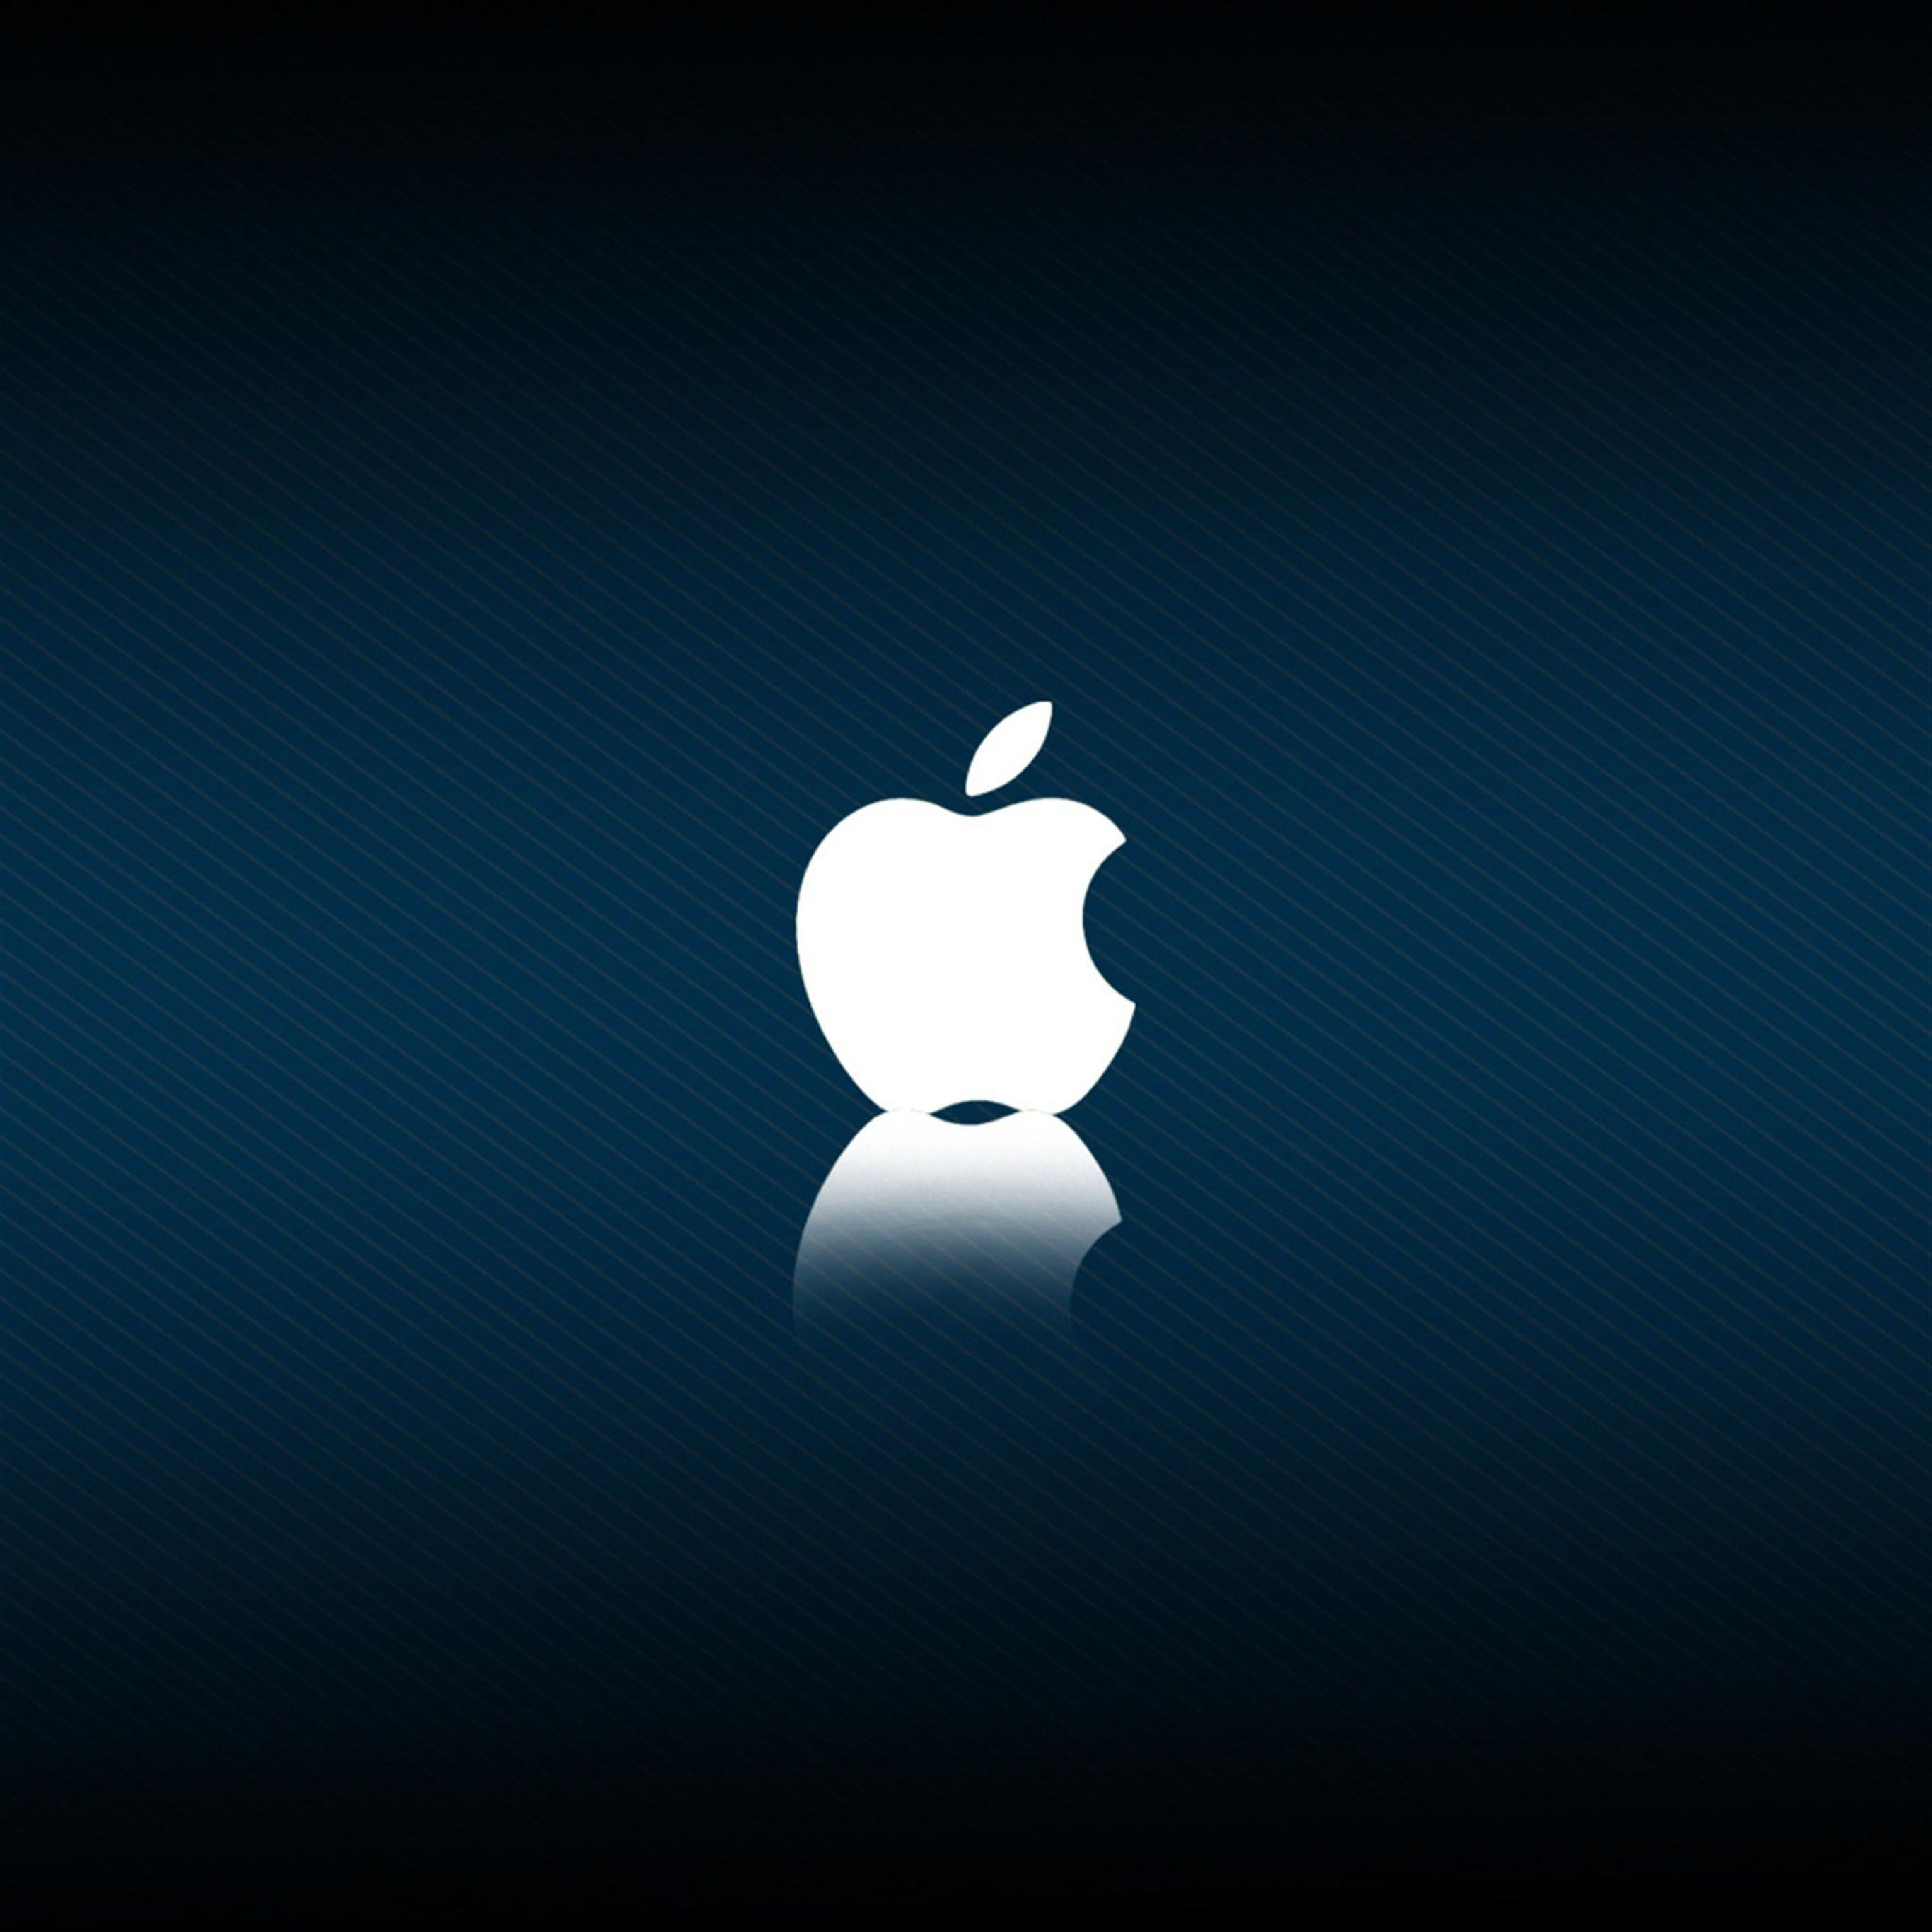 Apple Ipad Pro Wallpaper 133 Ipad Pro Others Wallpaper